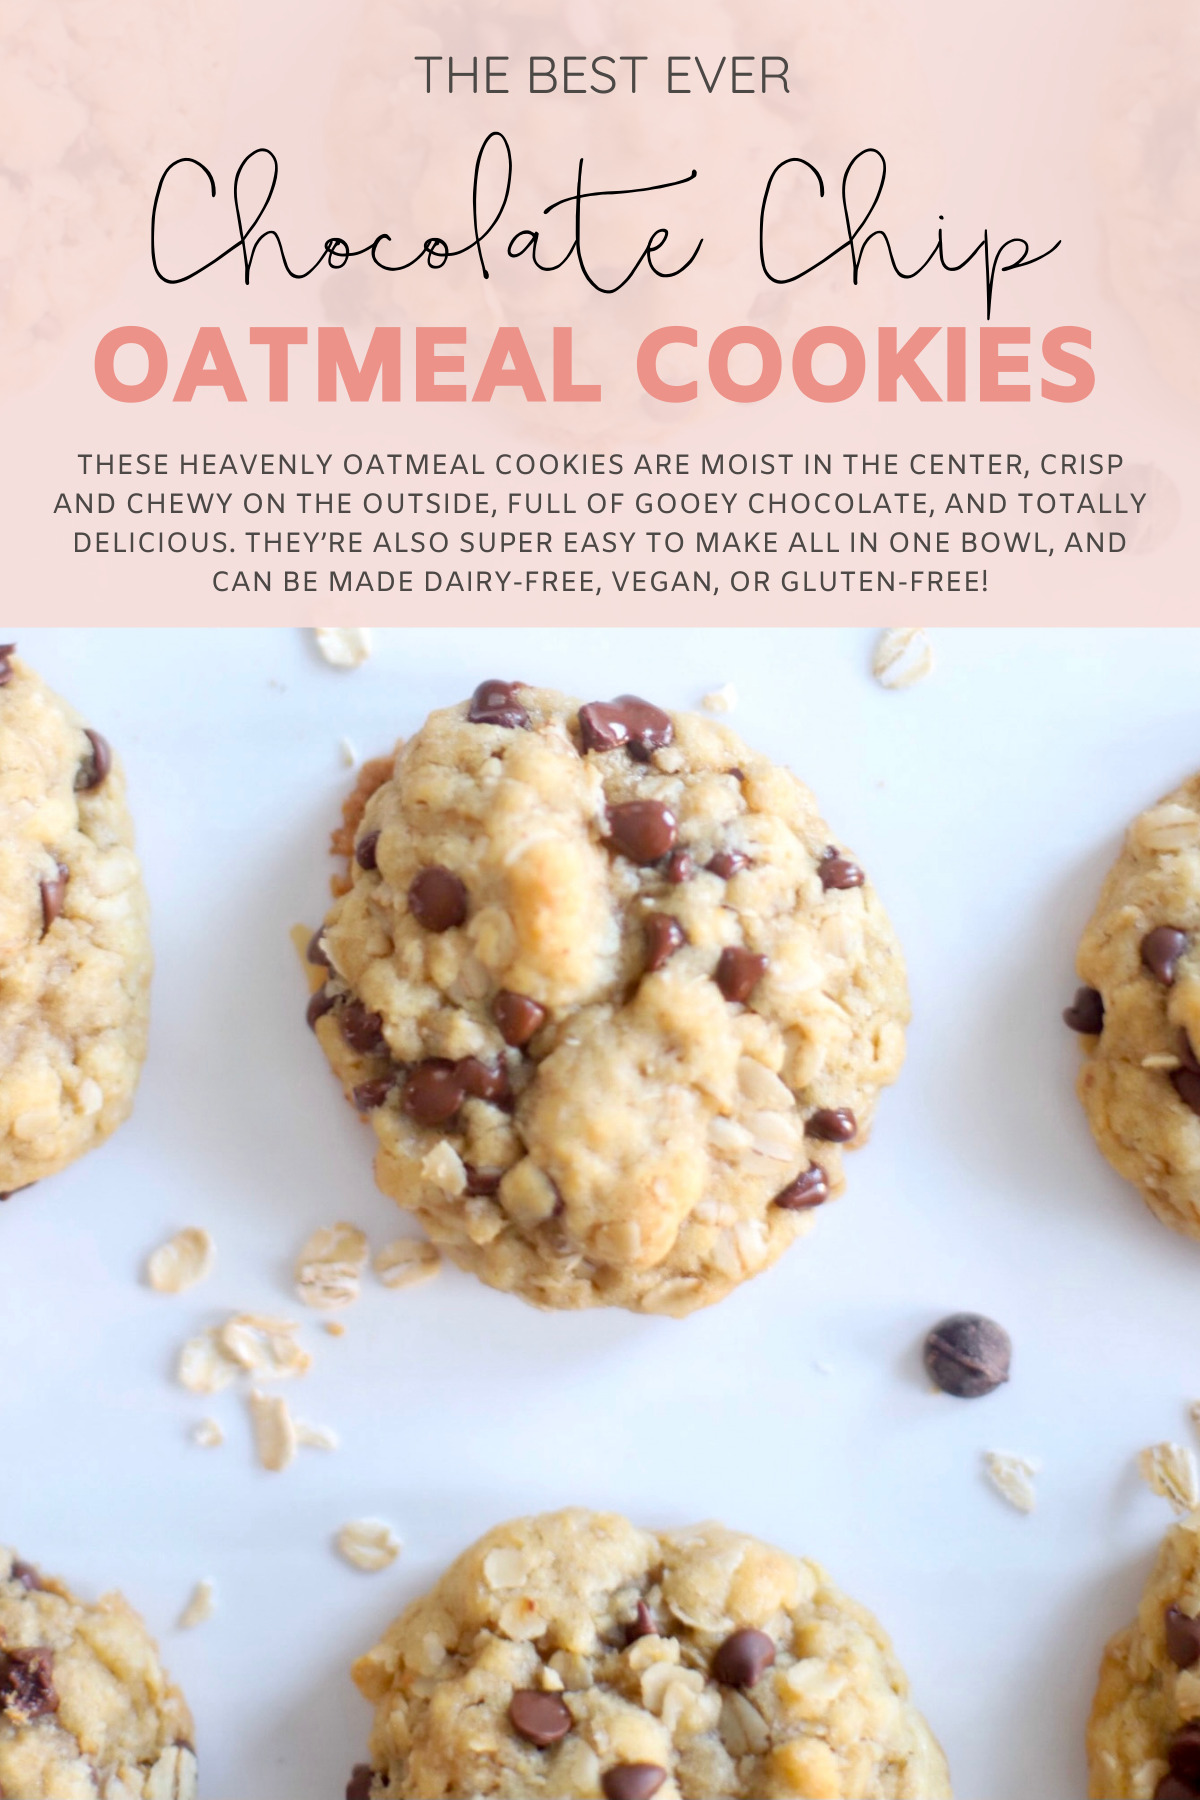 Hands down our very favorite oatmeal chocolate chip cookies, these heavenly oatmeal cookies are moist in the center, crisp and chewy on the outside, and totally delicious. They're also super easy to make all in one bowl, and can easily be made dairy-free, vegan, or gluten-free! | @glitterinclexi | GLITTERINC.COM